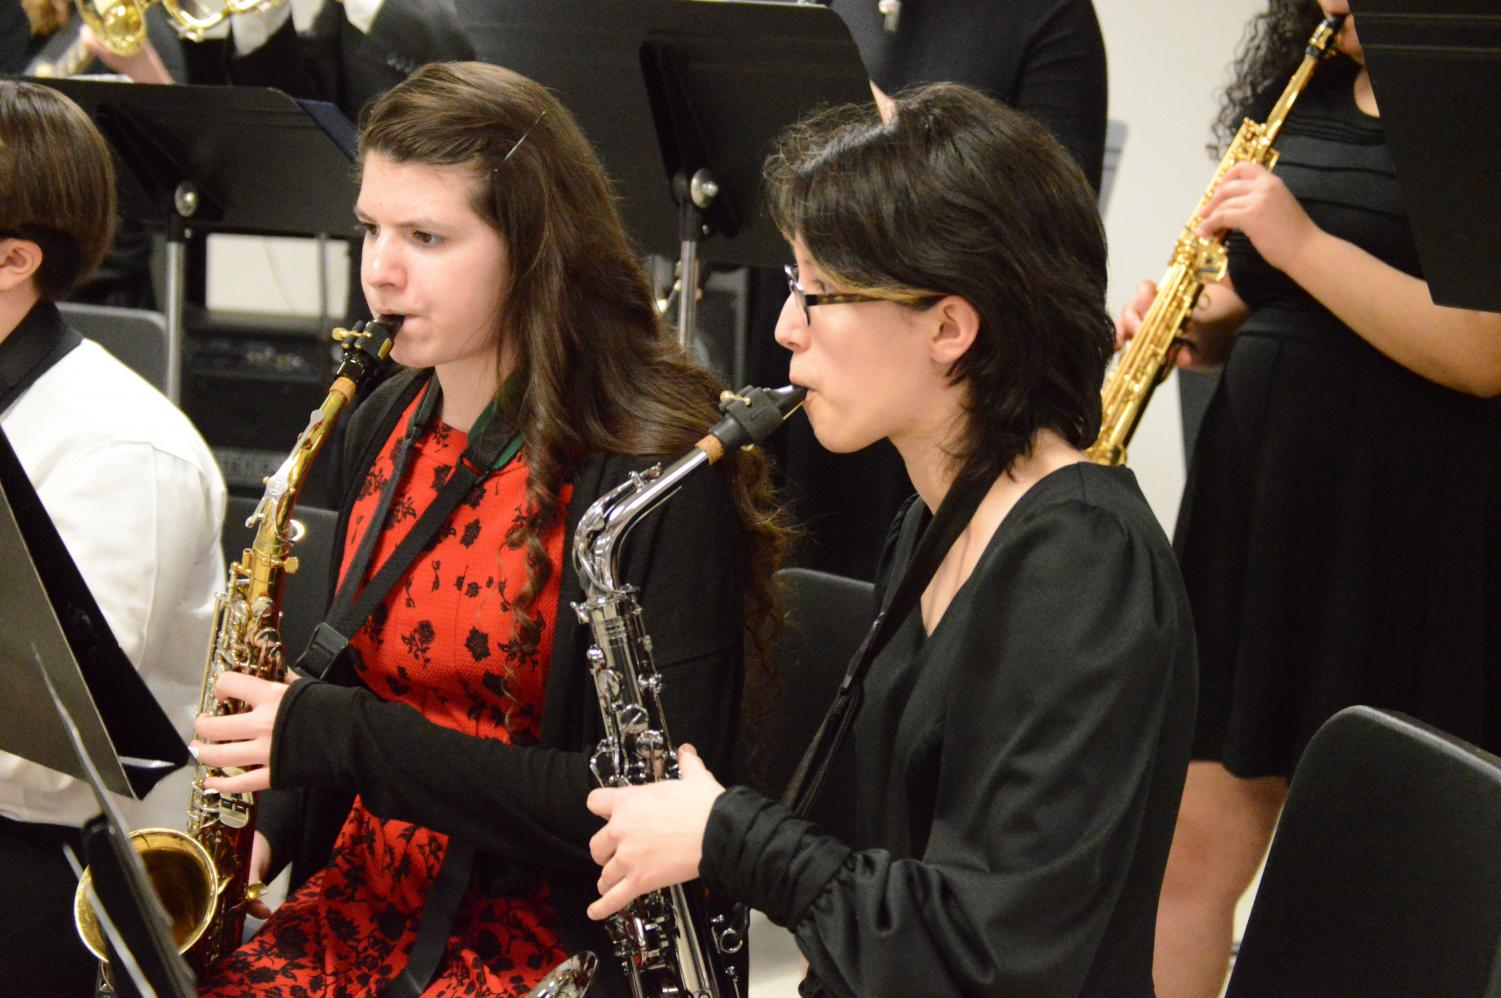 Sophomores+Julianne+Cooper+%28left%29+and+Sarah+Mendoza+%28right%29+plays+their+saxophones+together+during+the+concert.